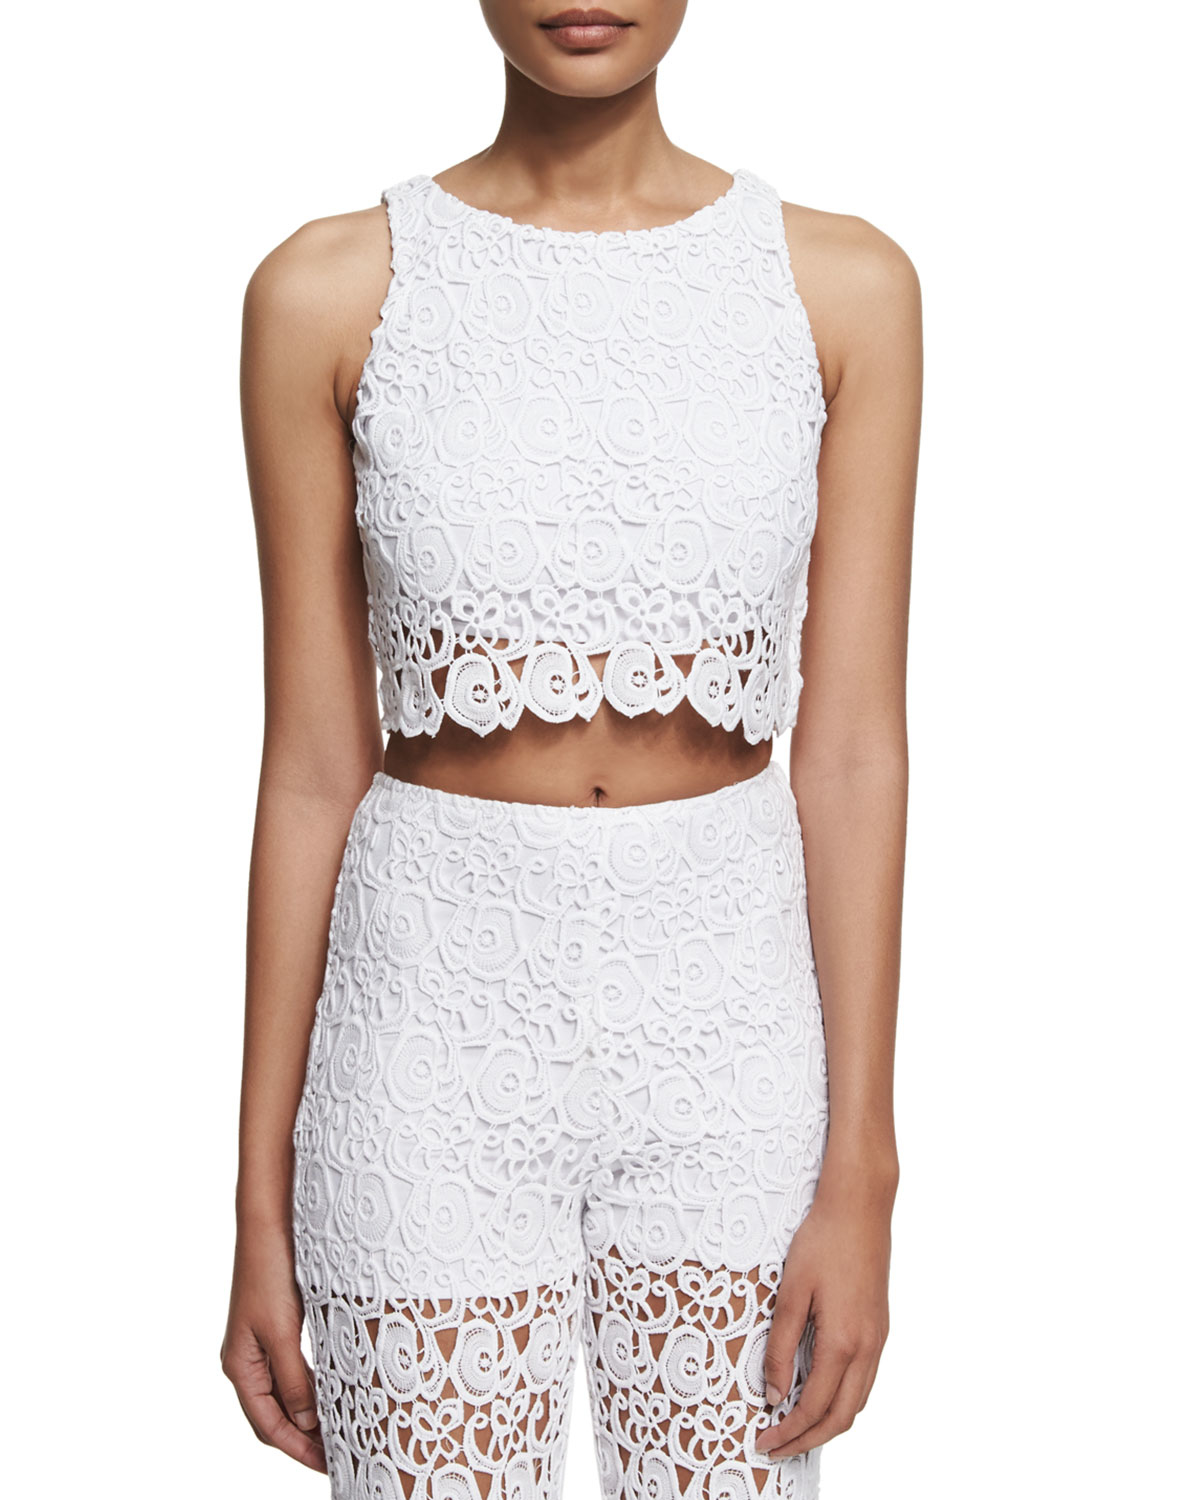 One Size Off Shoulder Short Sleeve White Floral Lace Crop Top $ V Neckline Spaghetti Strap Floral Lace Pink Bodysuit (ONE SIZE) $ Sexy Sleeveless Ruffle Detail V Neckline Black And White Crop Top $ Stylish Cold Shoulder Short Sleeve Lace Up V Neckline Ruched Sides Mustard Top $ Party In Style With Our Club.